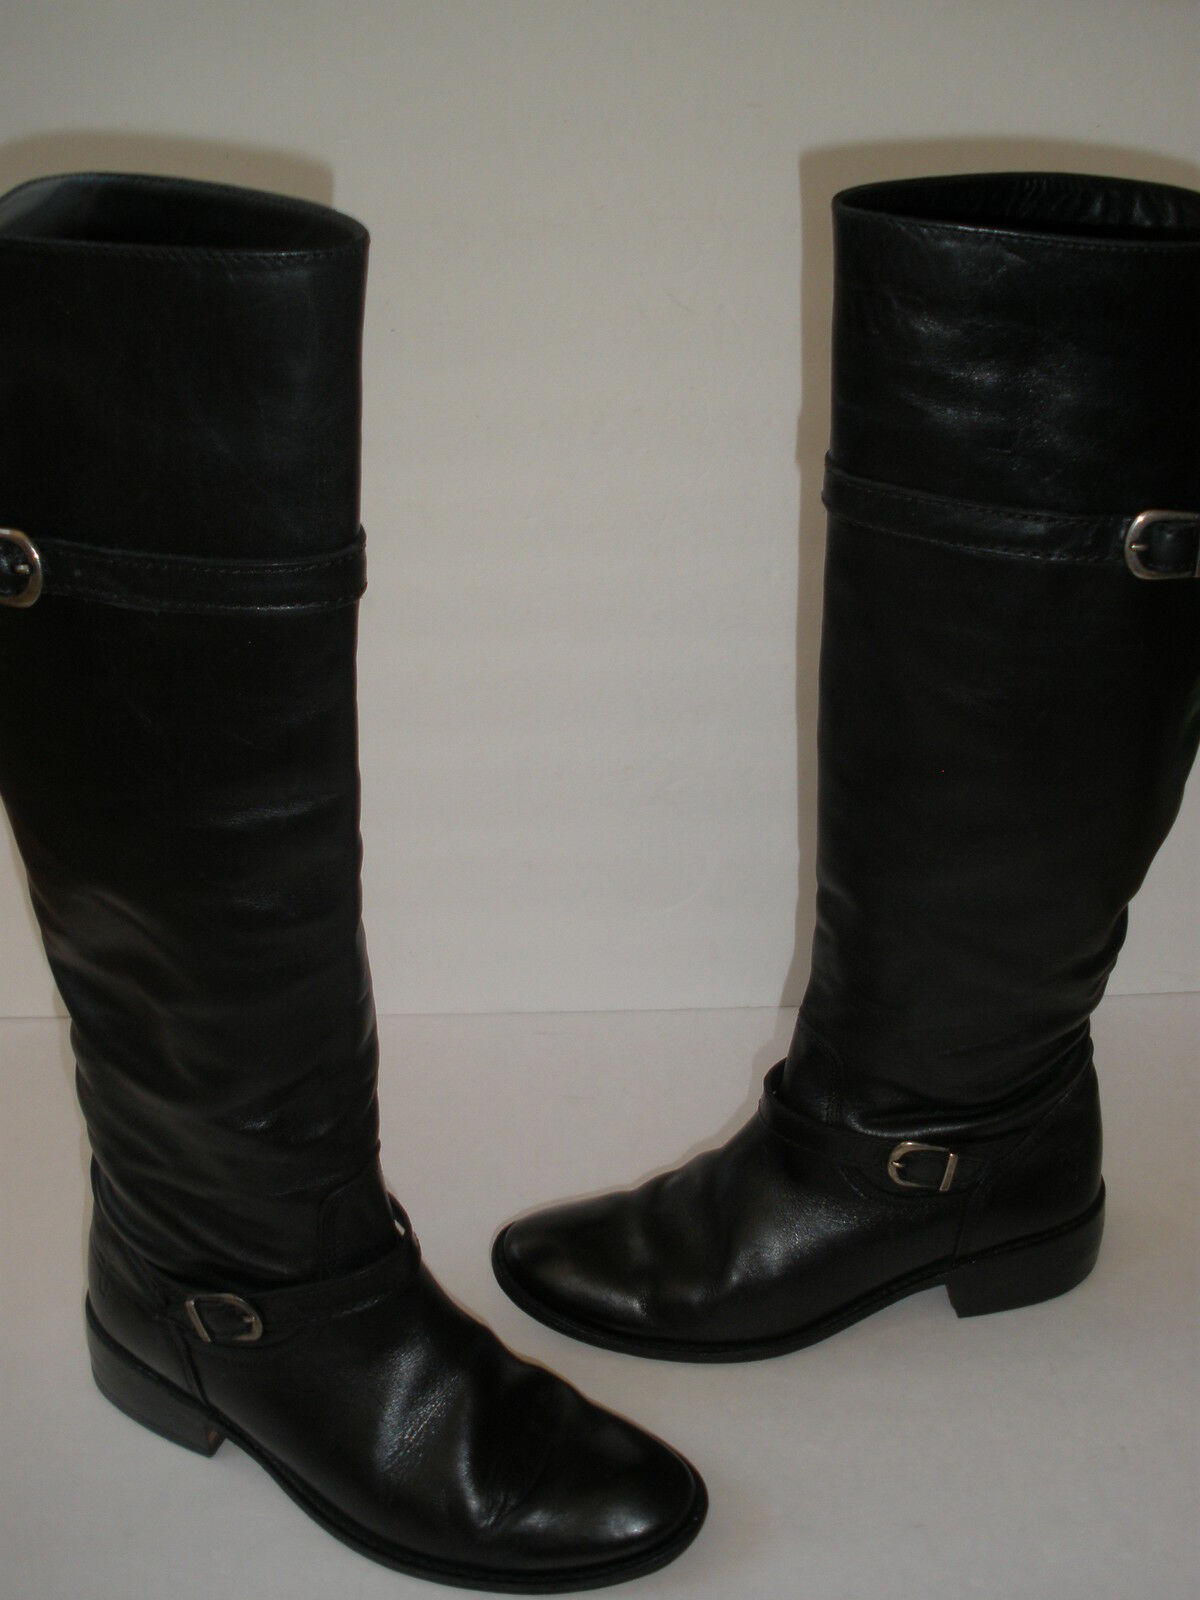 FRYE LEATHER RIDING RIDING RIDING BOOTS size   5.5 HOT MADE IN MEXICO M T HAVE IT WOW 550960